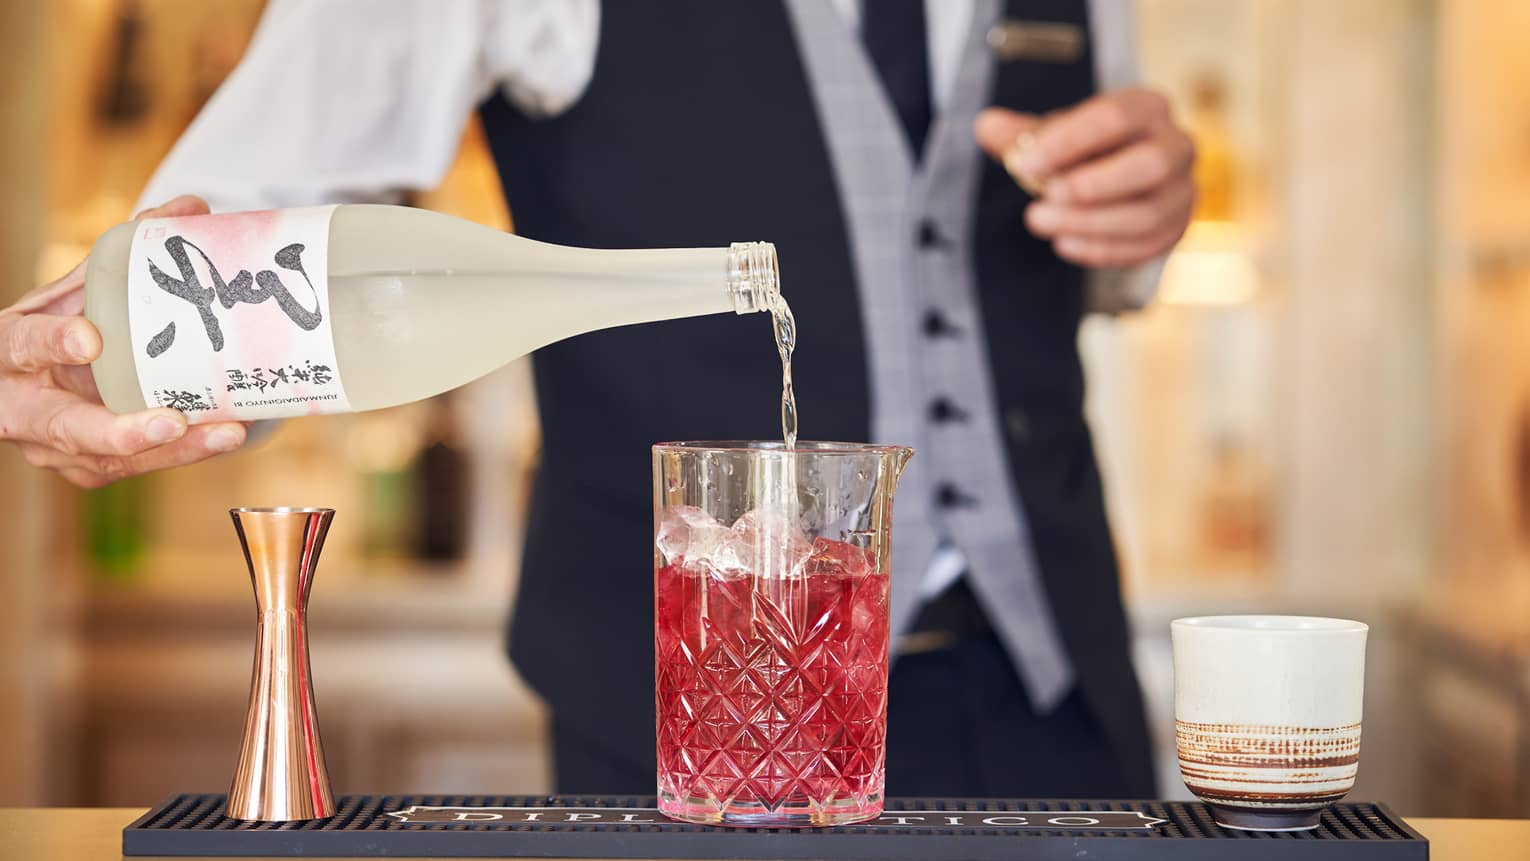 A handcrafted Asian cocktail is delicately prepared